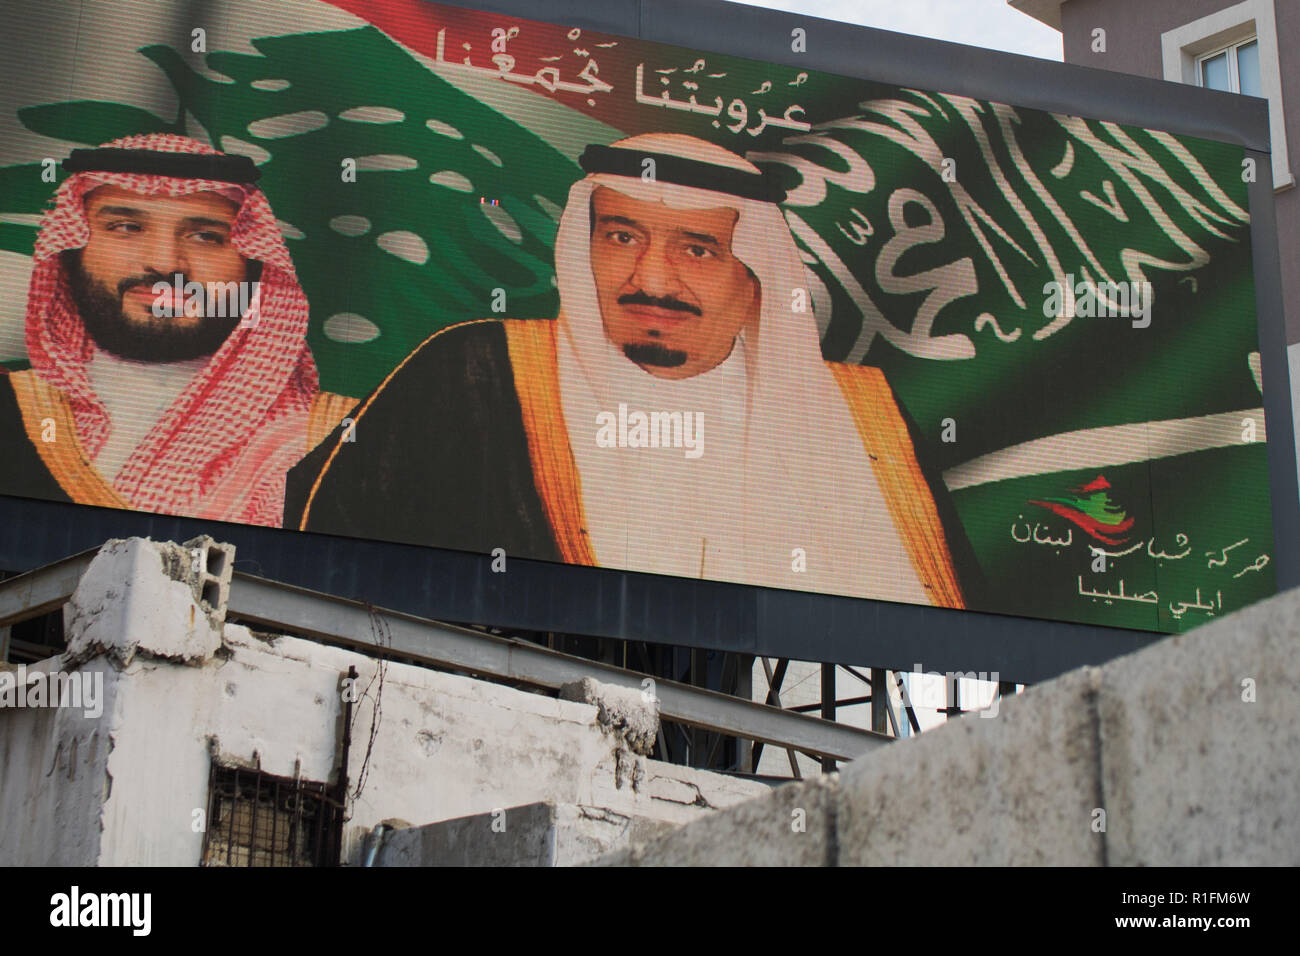 Beirut, Lebanon. 12th Nov, 2018. The portraits of Saudi Arabia Crown Prince Mohammad Bin Salman next to his father Salman of Saudi Arabia appear on an electronic advertising board in Beirut in the wake of the disappearance and untimely death of Saudi Journalist Saudi Arabian journalist Jamal Khashoggi at the Saudi Arabia embassy in Istanbul on 2 October 2018 Credit: amer ghazzal/Alamy Live News - Stock Image